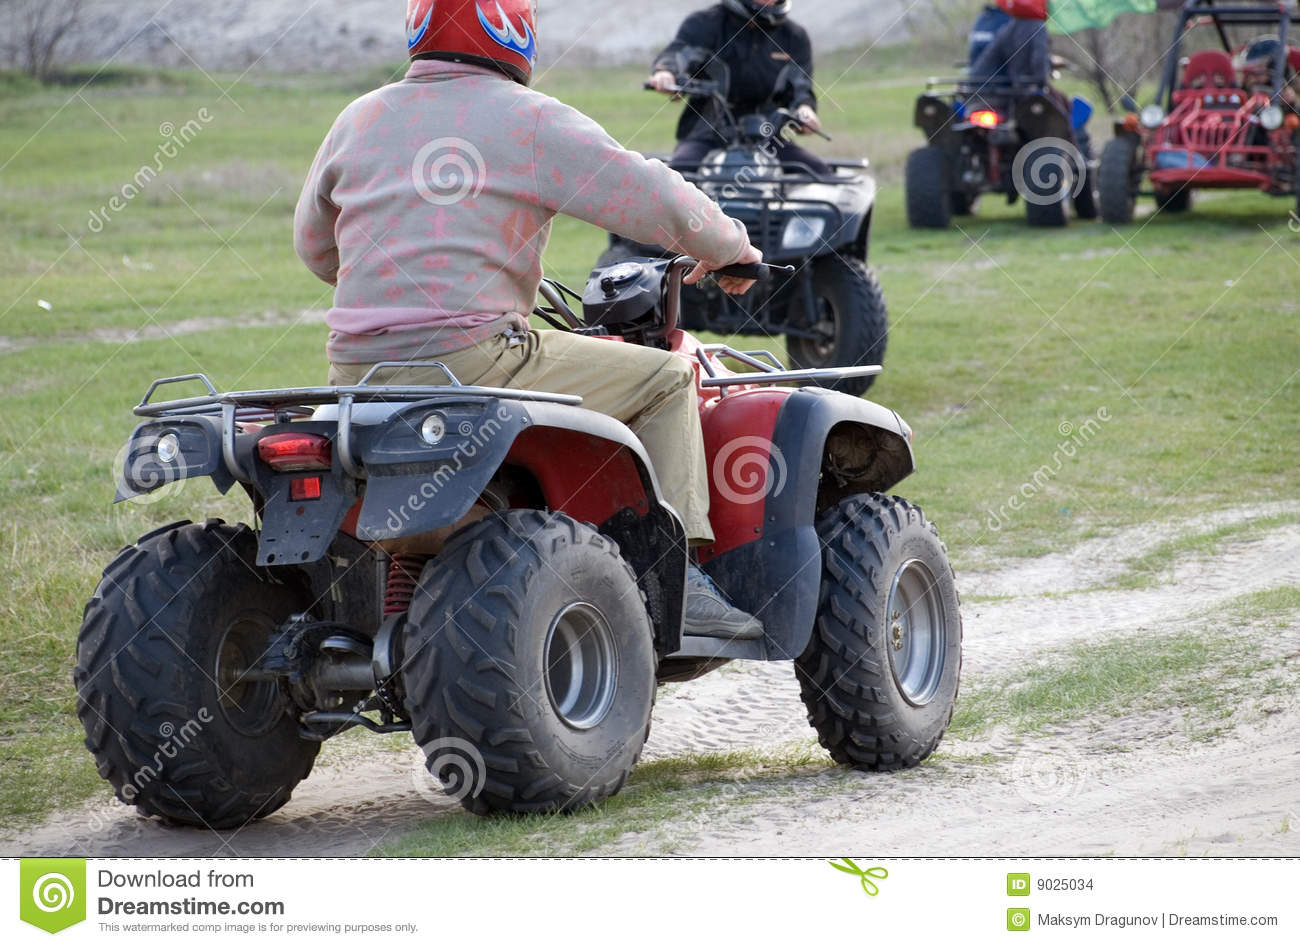 pin pin atv riders tattoos and tattoo designs excellent on pinterest on pinterest. Black Bedroom Furniture Sets. Home Design Ideas